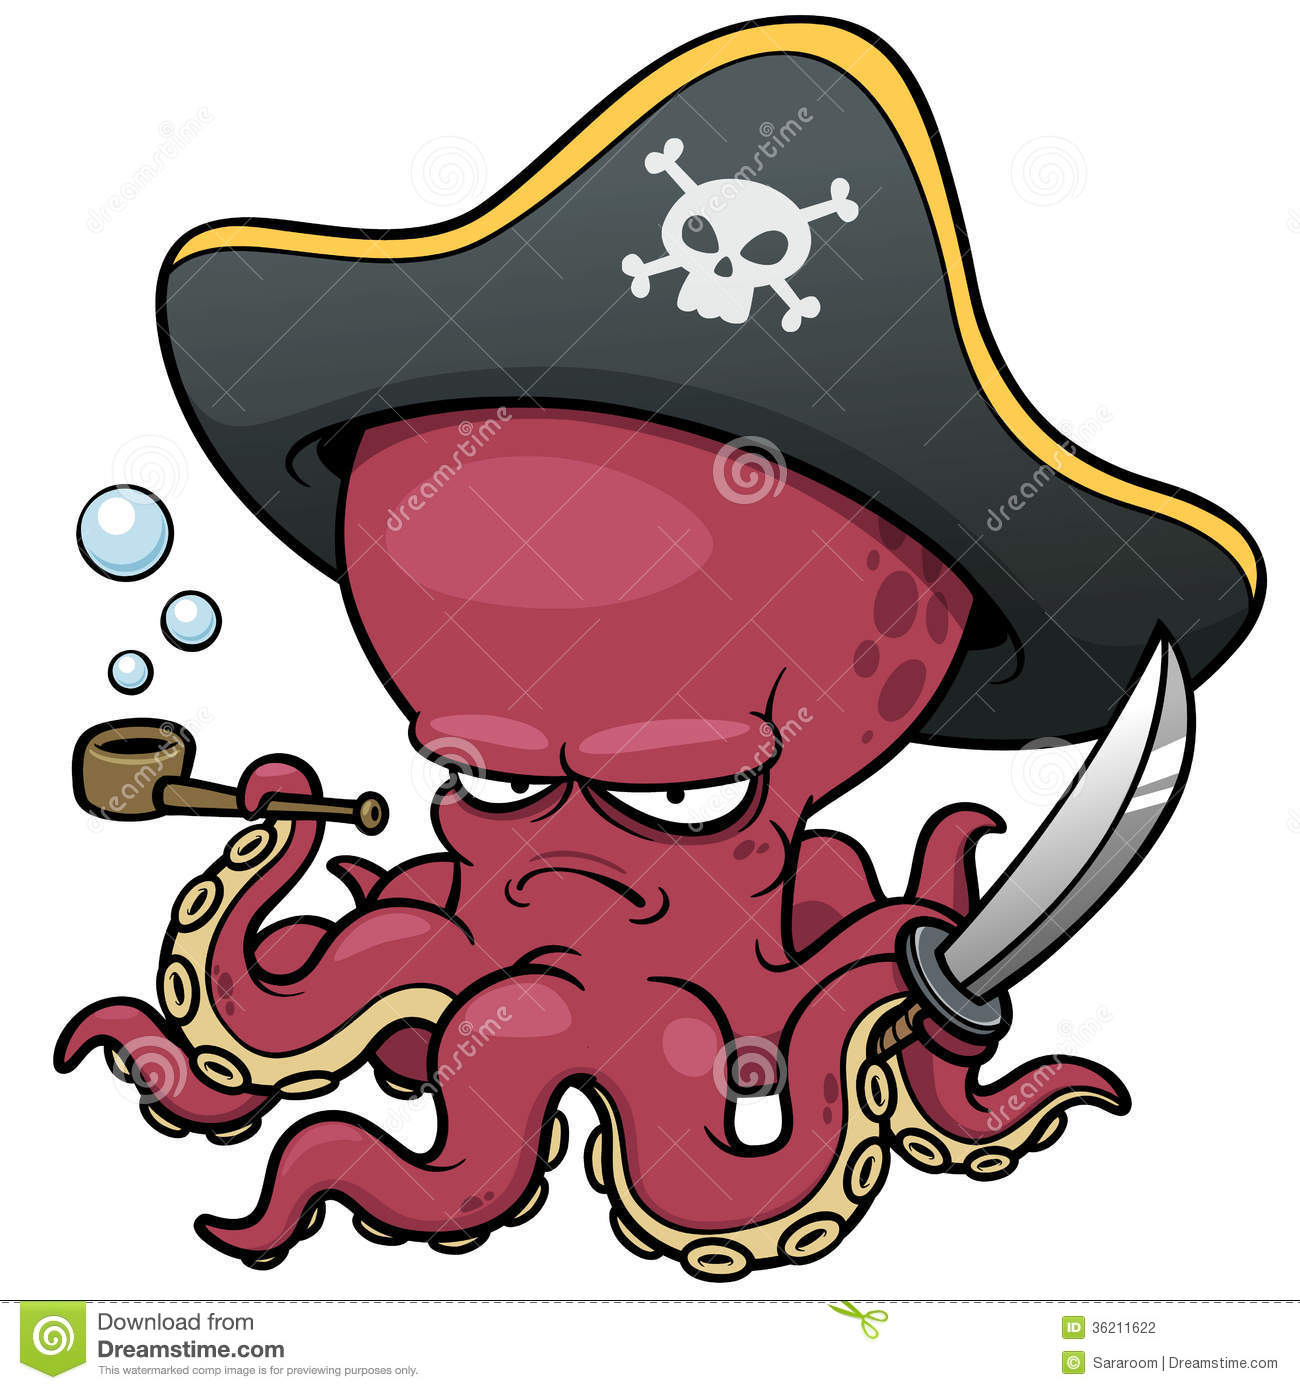 Evil octopus cartoon - photo#20